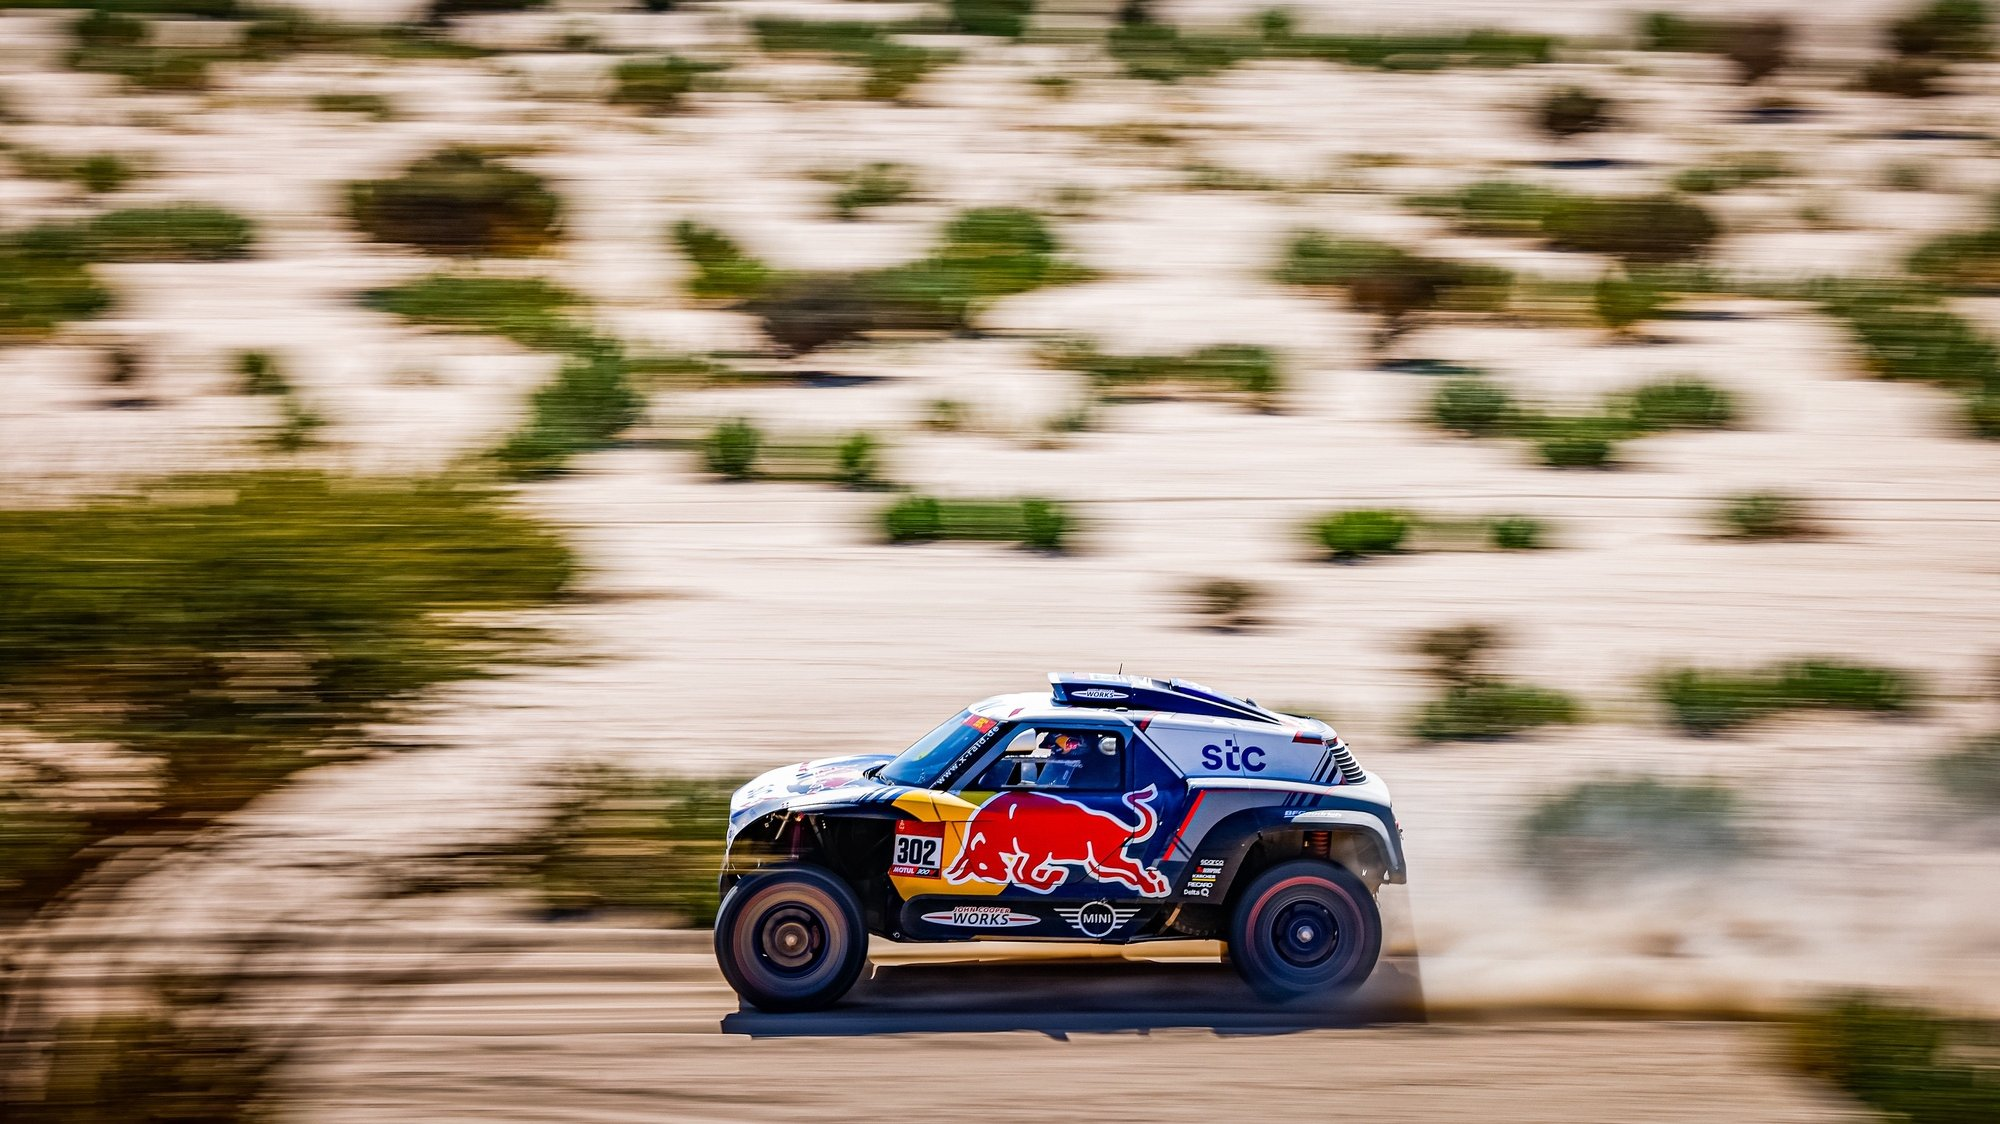 epa08916545 A handout photo made available by ASO of   Stephane Peterhansel and Edouard Boulanger of France in action during the 1st stage of the Dakar 2021 between Jeddah and Bisha, in Saudi Arabia on January 3, 2021.  EPA/Frederic Le Floch HANDOUT via ASO SHUTTERSTOCK OUT HANDOUT EDITORIAL USE ONLY/NO SALES/NO ARCHIVES